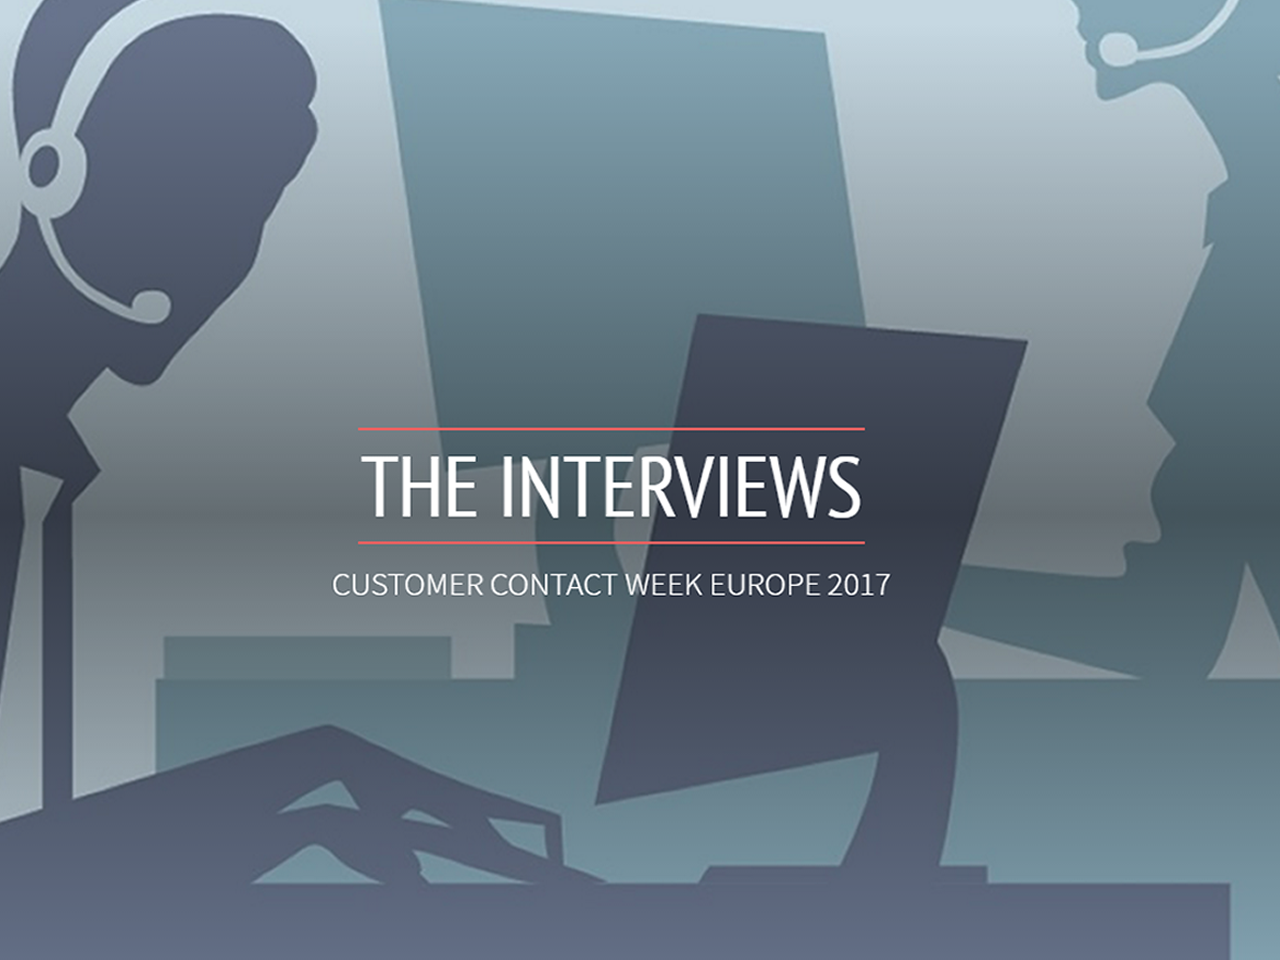 CCW 2017: THE INTERVIEWS